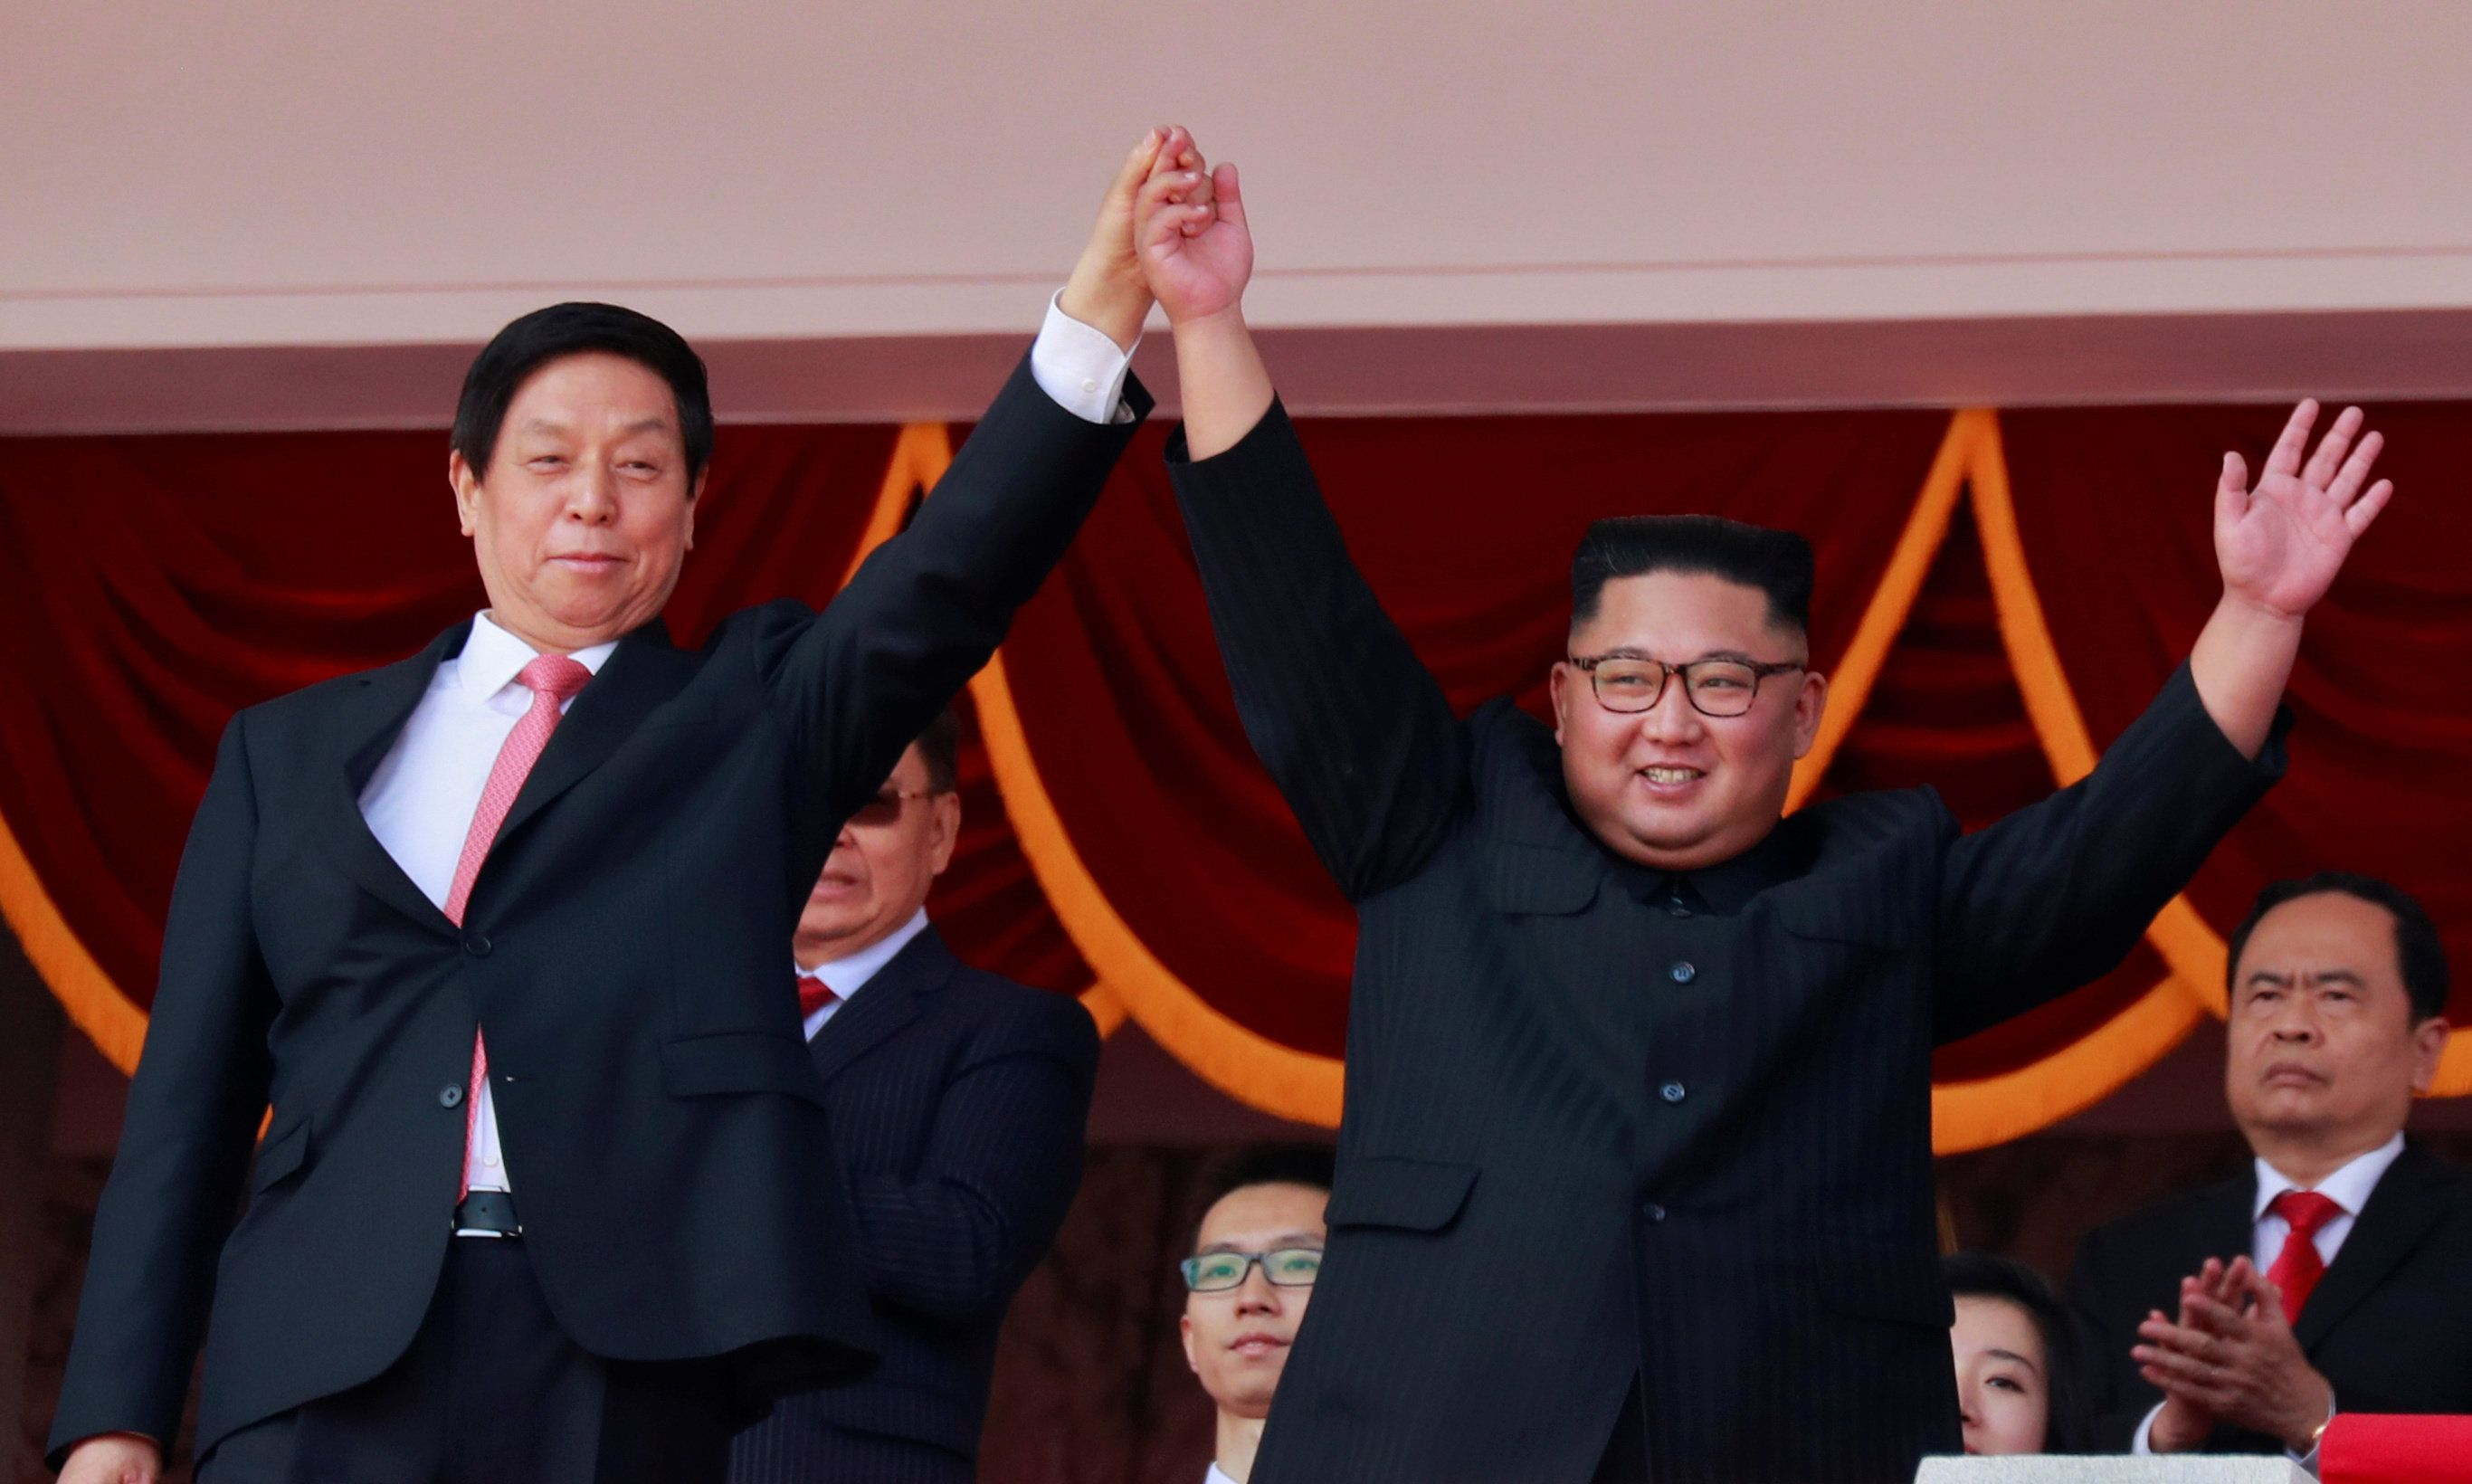 North Korean leader Kim Jong Un and China's Li Zhanshu, chairman of the Standing Committee of the National People's Congress (NPC), wave to people while attending a military parade marking the 70th anniversary of North Korea's foundation in Pyongyang, North Korea, September 9, 2018. REUTERS/Danish Siddiqui